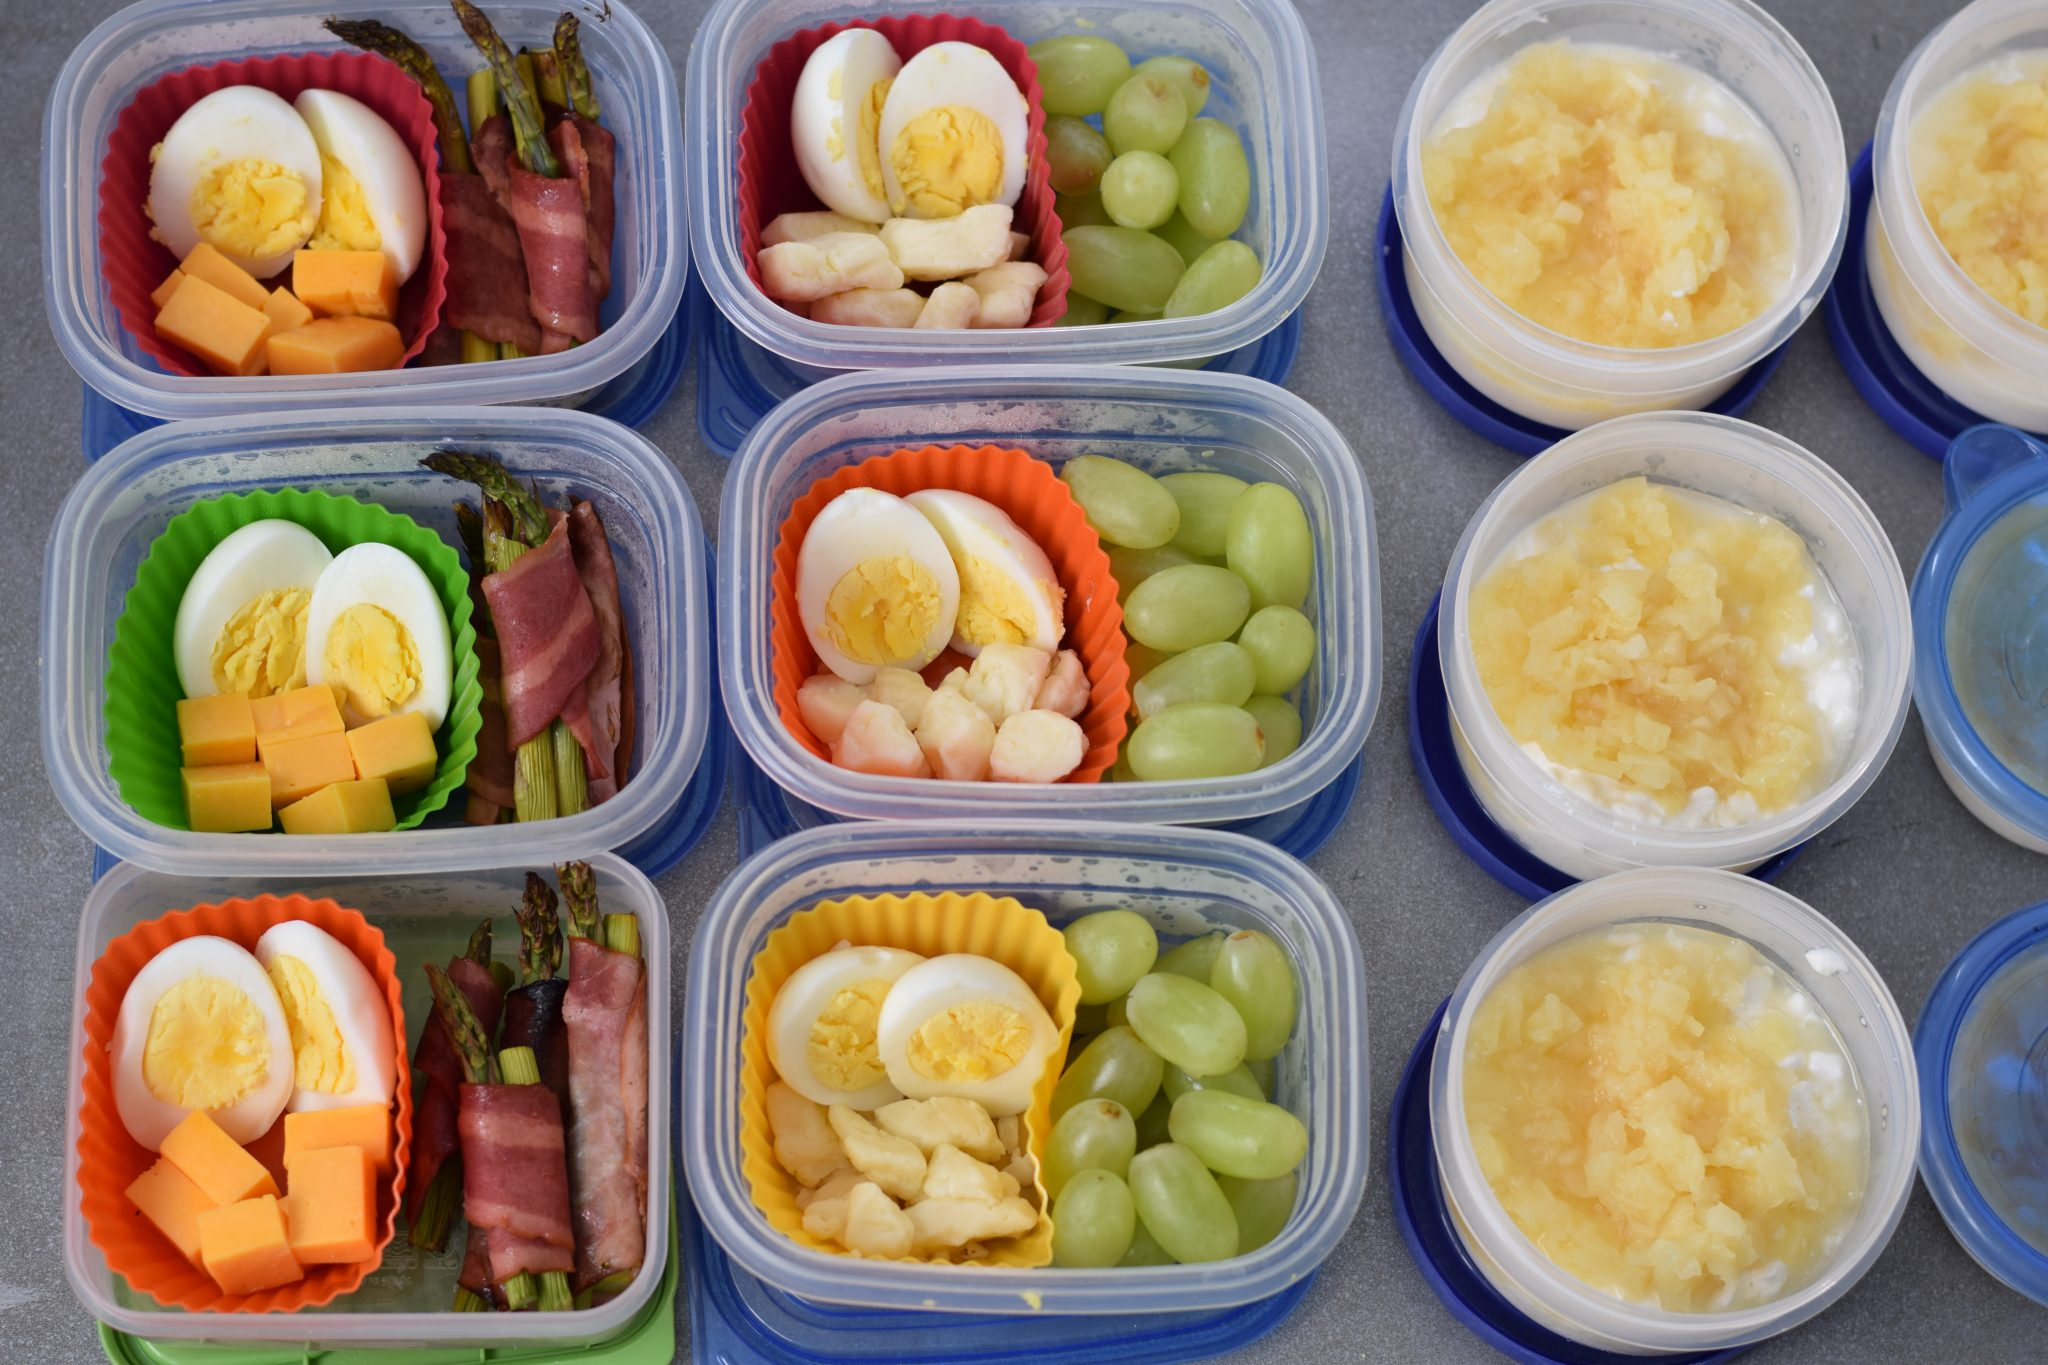 this is a picture of how I do food prep for snacks. More info at beneficial-bento.com